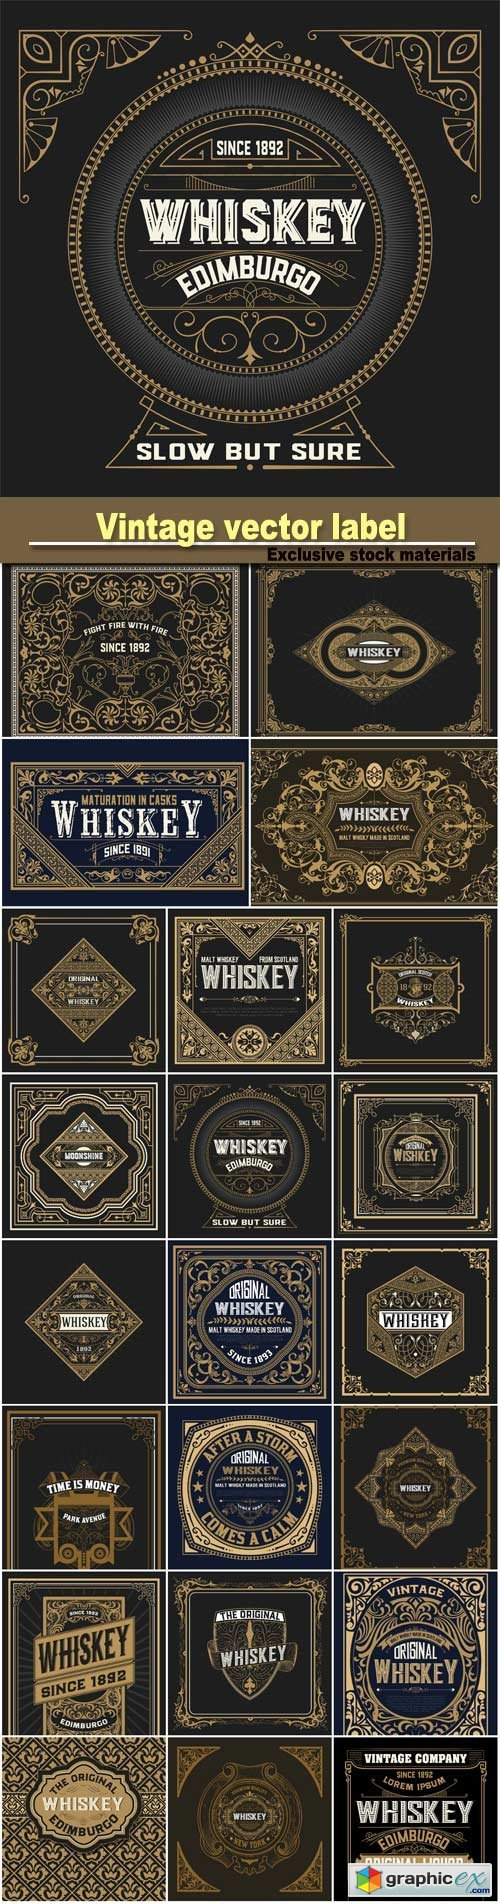 500x1904 Vintage Wedding Label, Retro Whiskey Label Vector Free Download